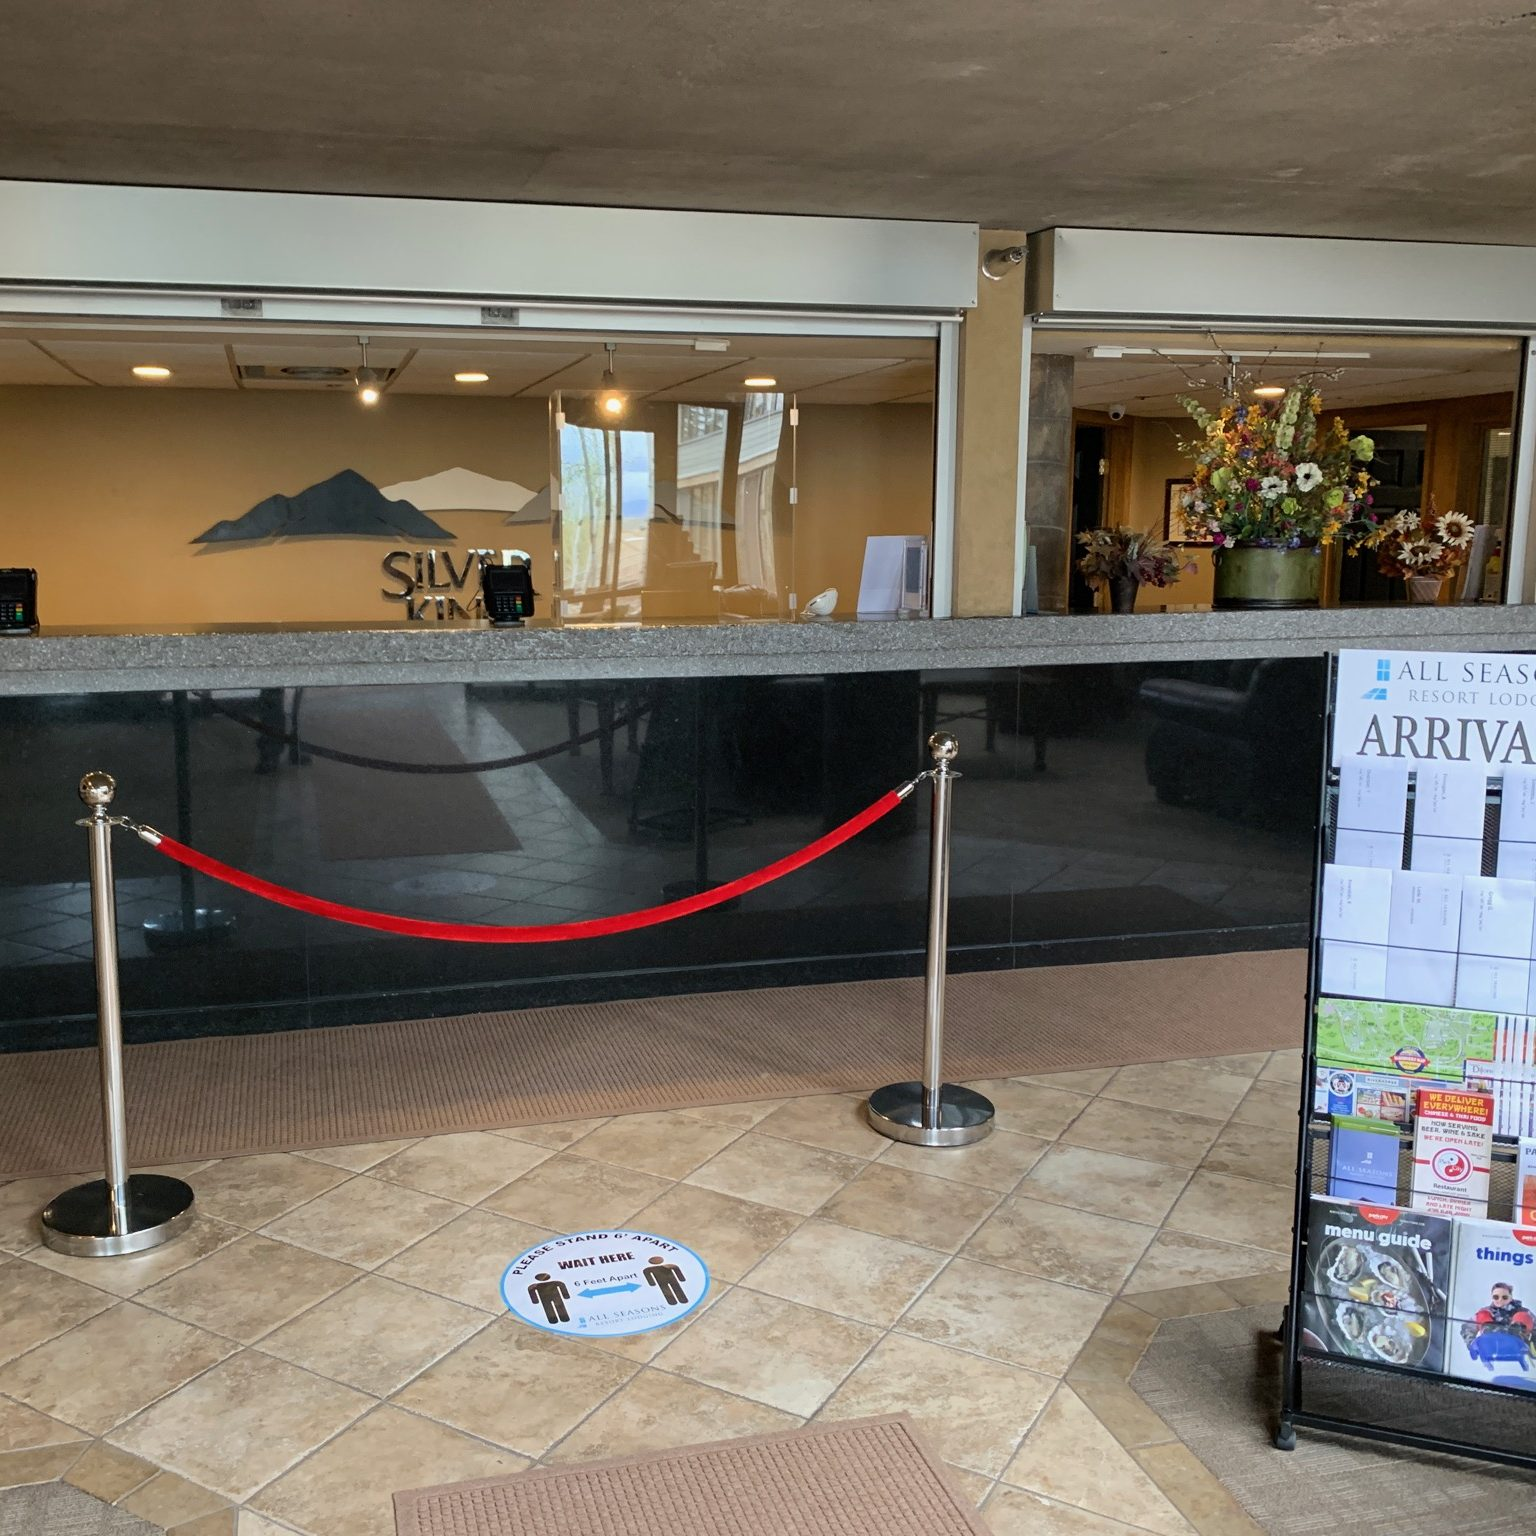 Silver King Hotel's New Front Desk Setup for COVID-19 Safety - Velvet Ropes, Touch-Free Check-In, and Acrylic Barriers